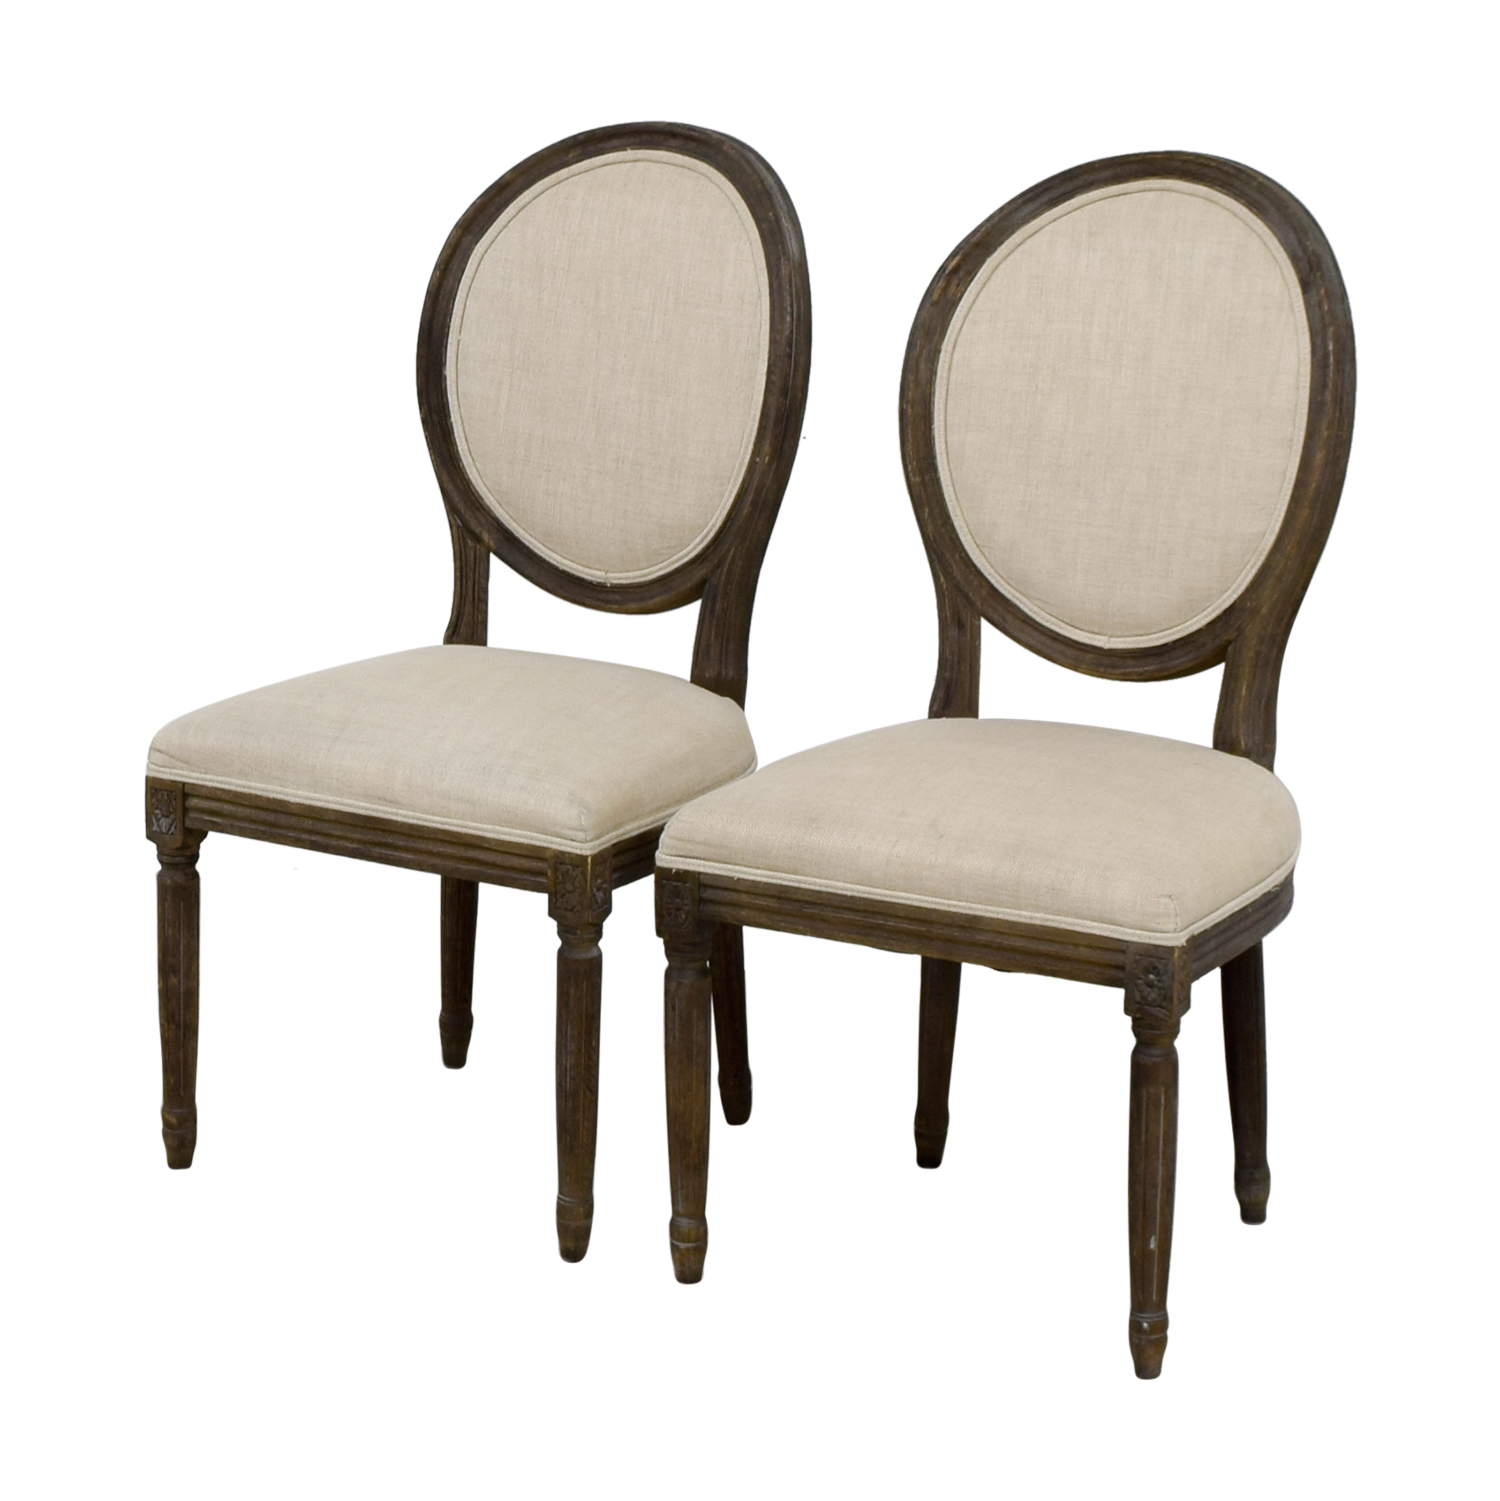 77 Off Restoration Hardware Restoration Hardware Beige Dining Chairs Chairs